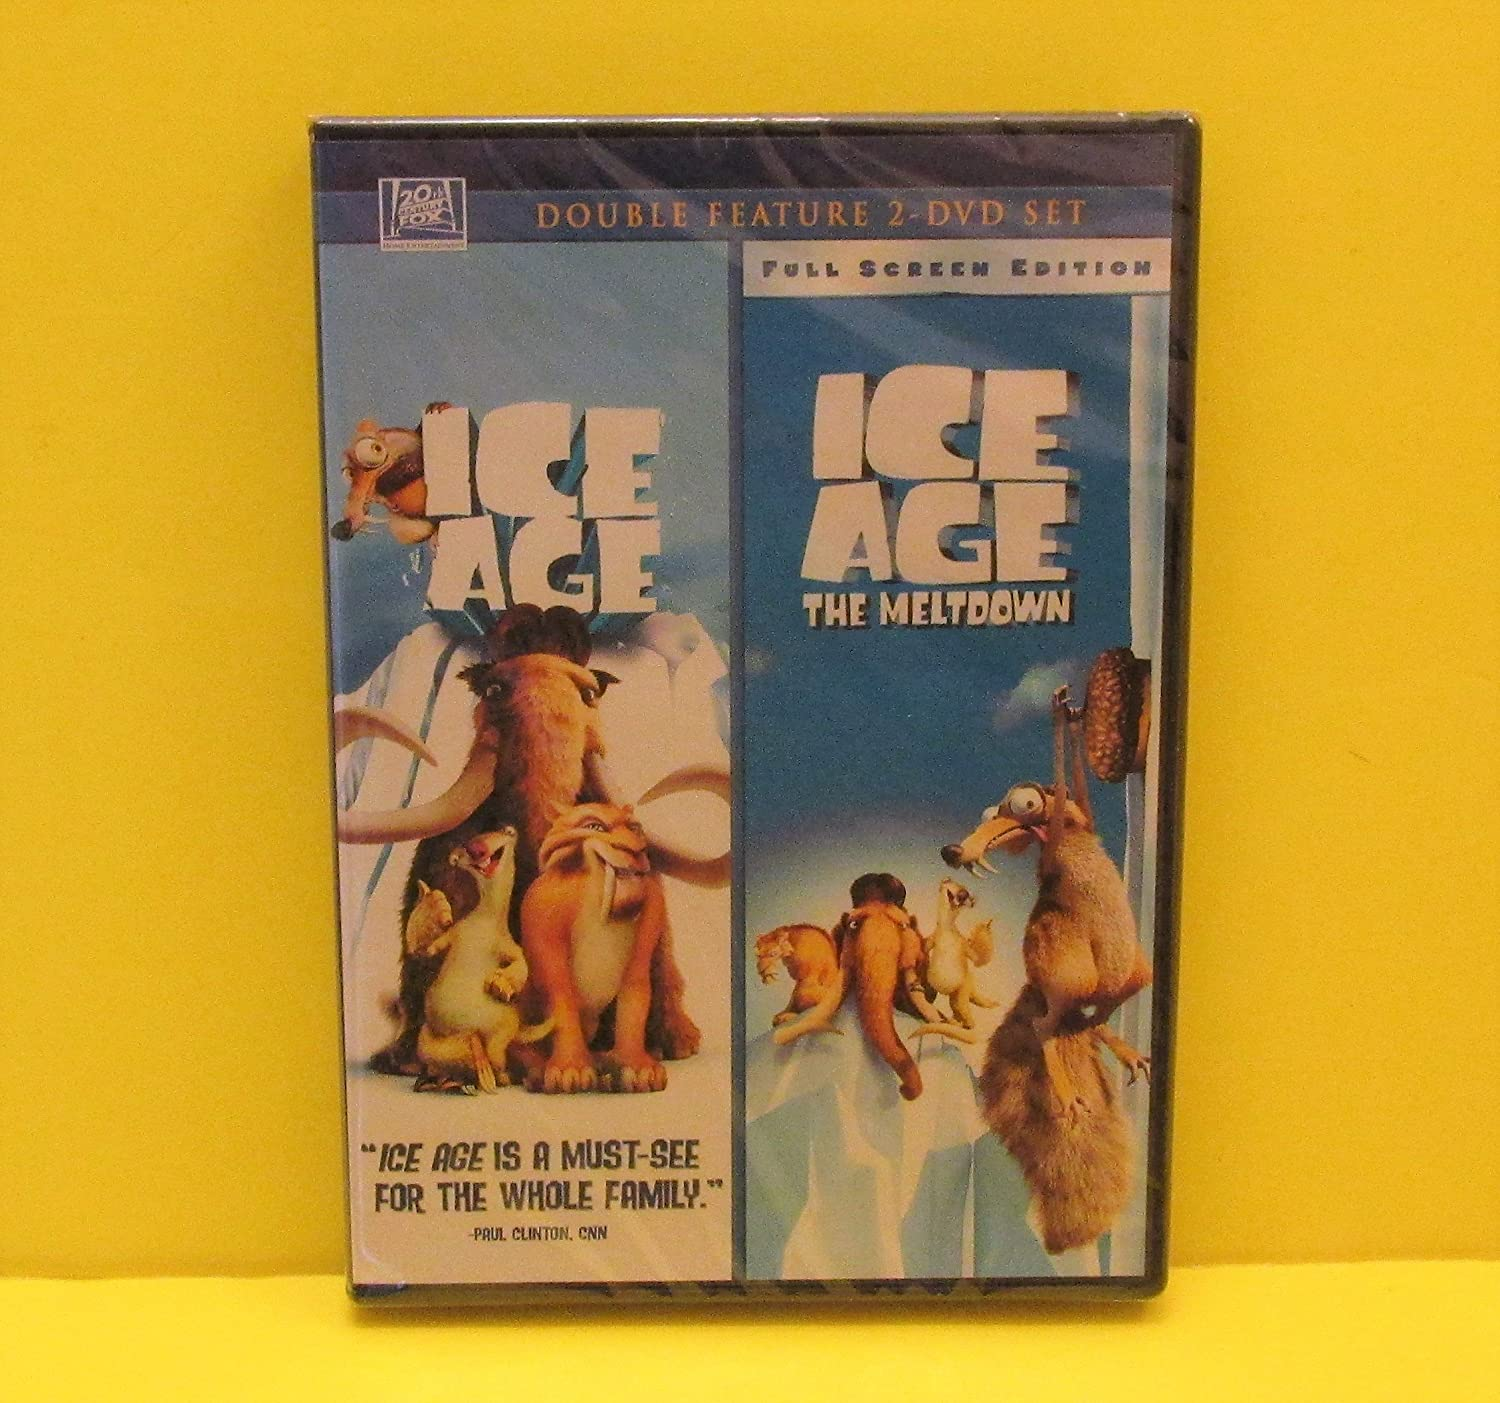 Amazon Com Ice Age Ice Age The Meltdown Double Feature 2 Disc Set 2009 Movies Tv